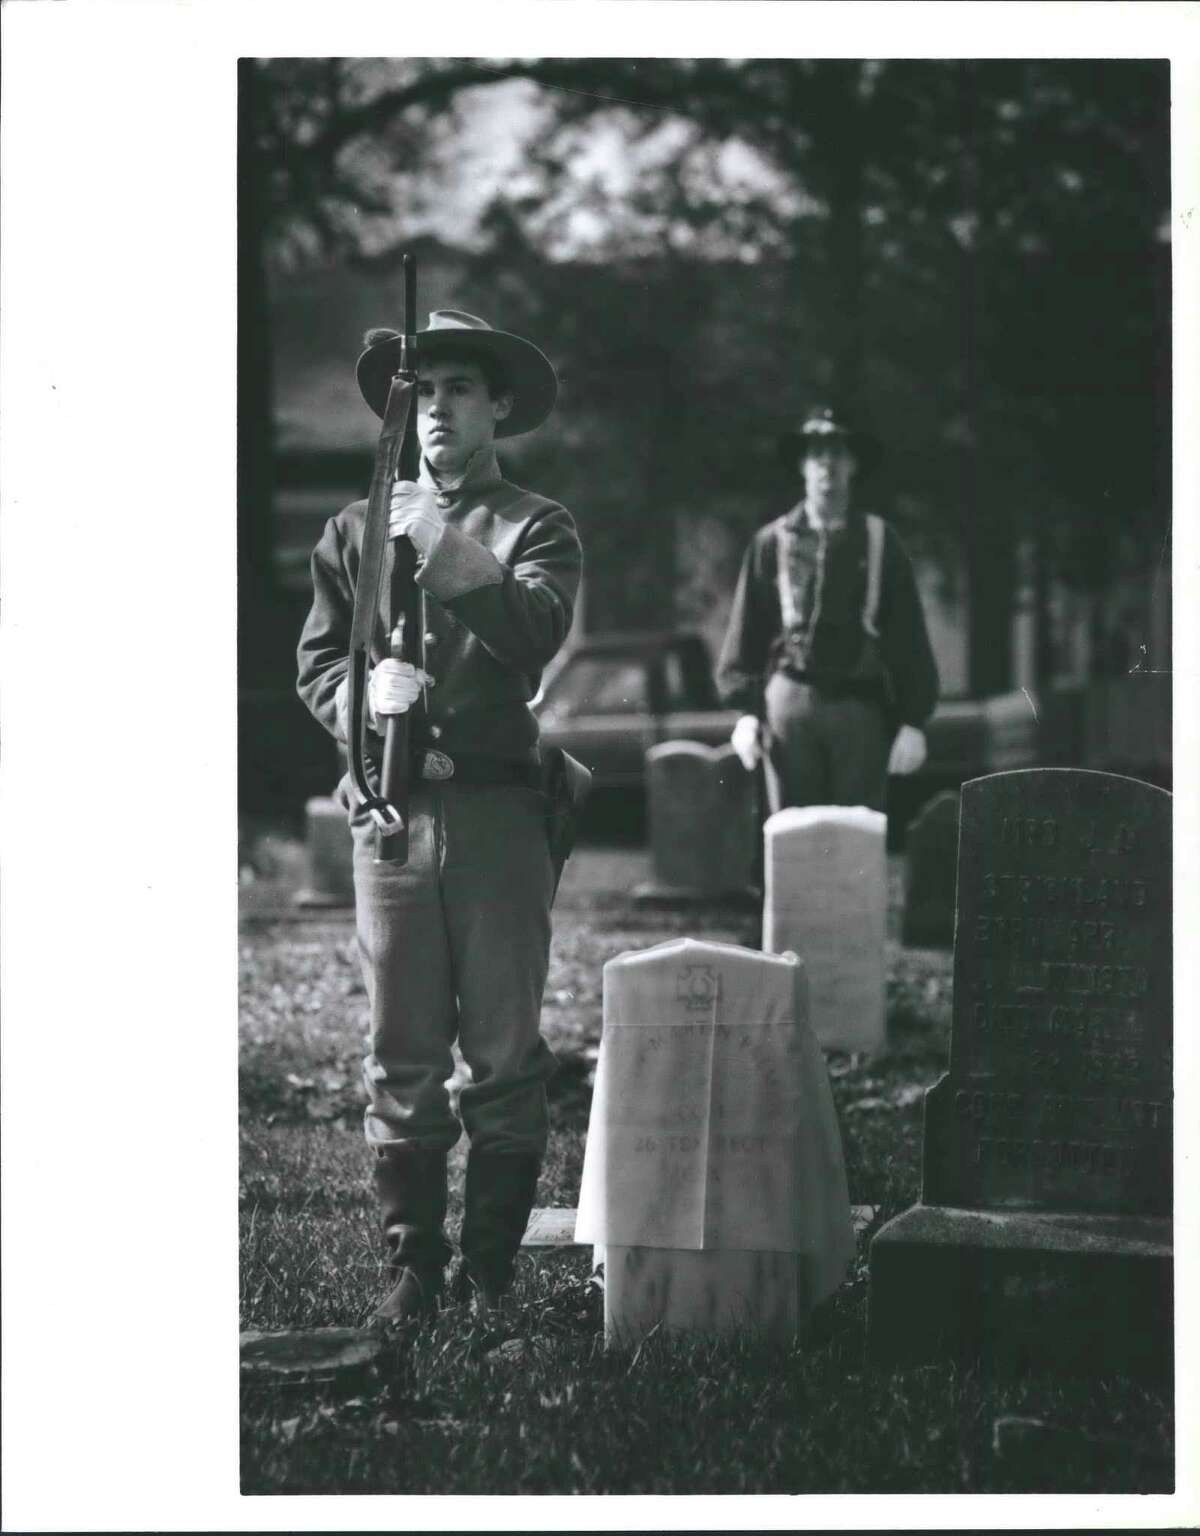 A soldier's grave - James Scott of the 11th Texas Cavlary, a Confederate re-enactment group, stands at attention before uncovering the new grave marker for John Martin Palmer of the Confederate 26th Texas Regiment at Evergreen Cemetery. Palmer was buried in an unmarked grave in 1914. The ceremony dedicated 12 new monuments for veterans. Houston